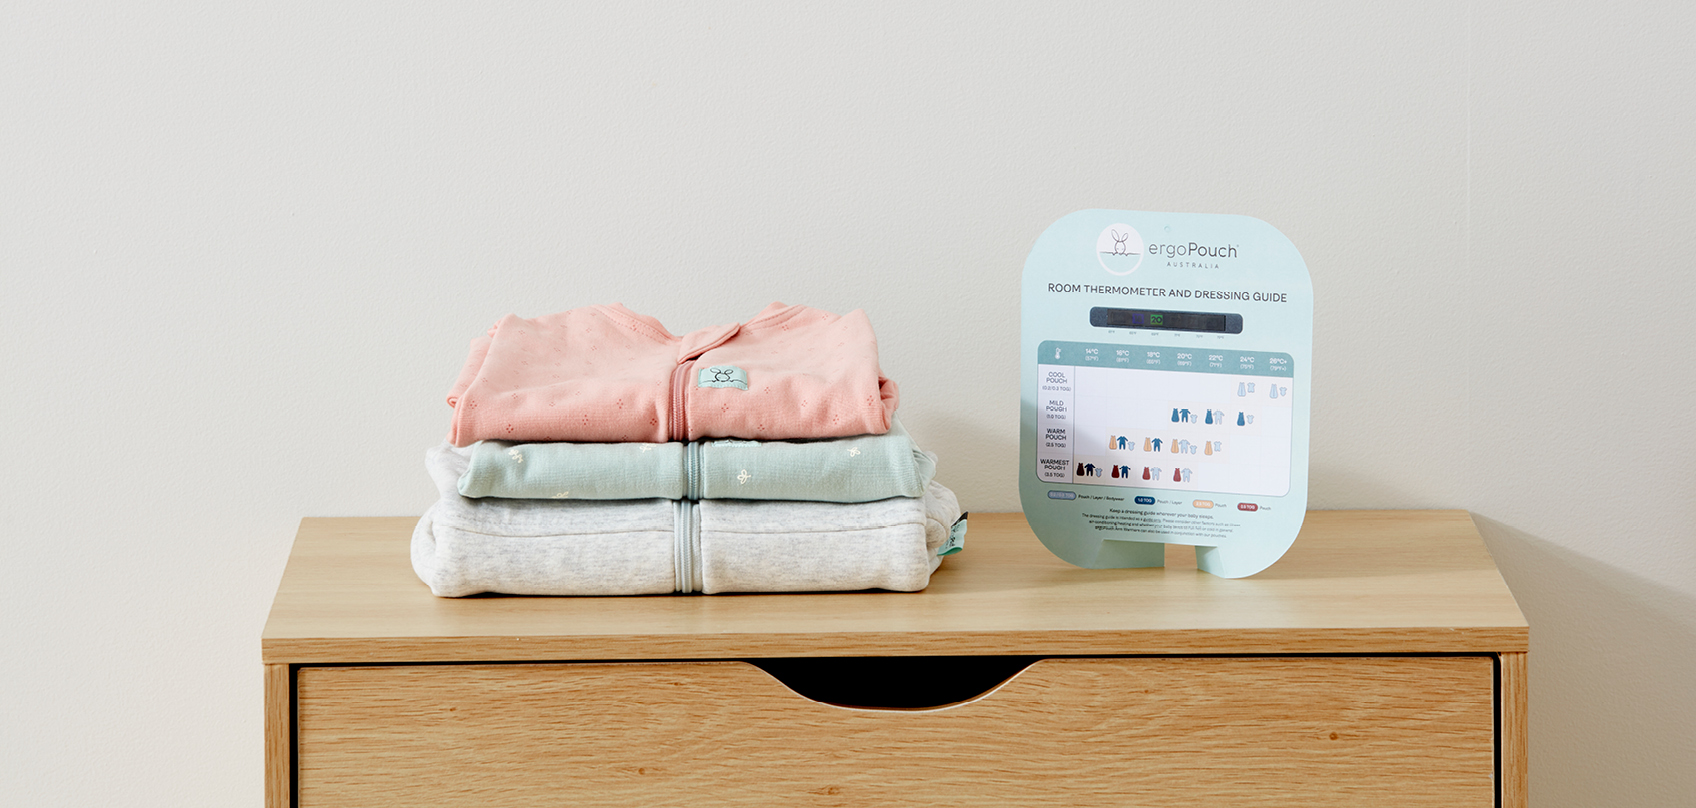 Image of products stacked on top of each other next to a ergoPouch Room Thermometer.